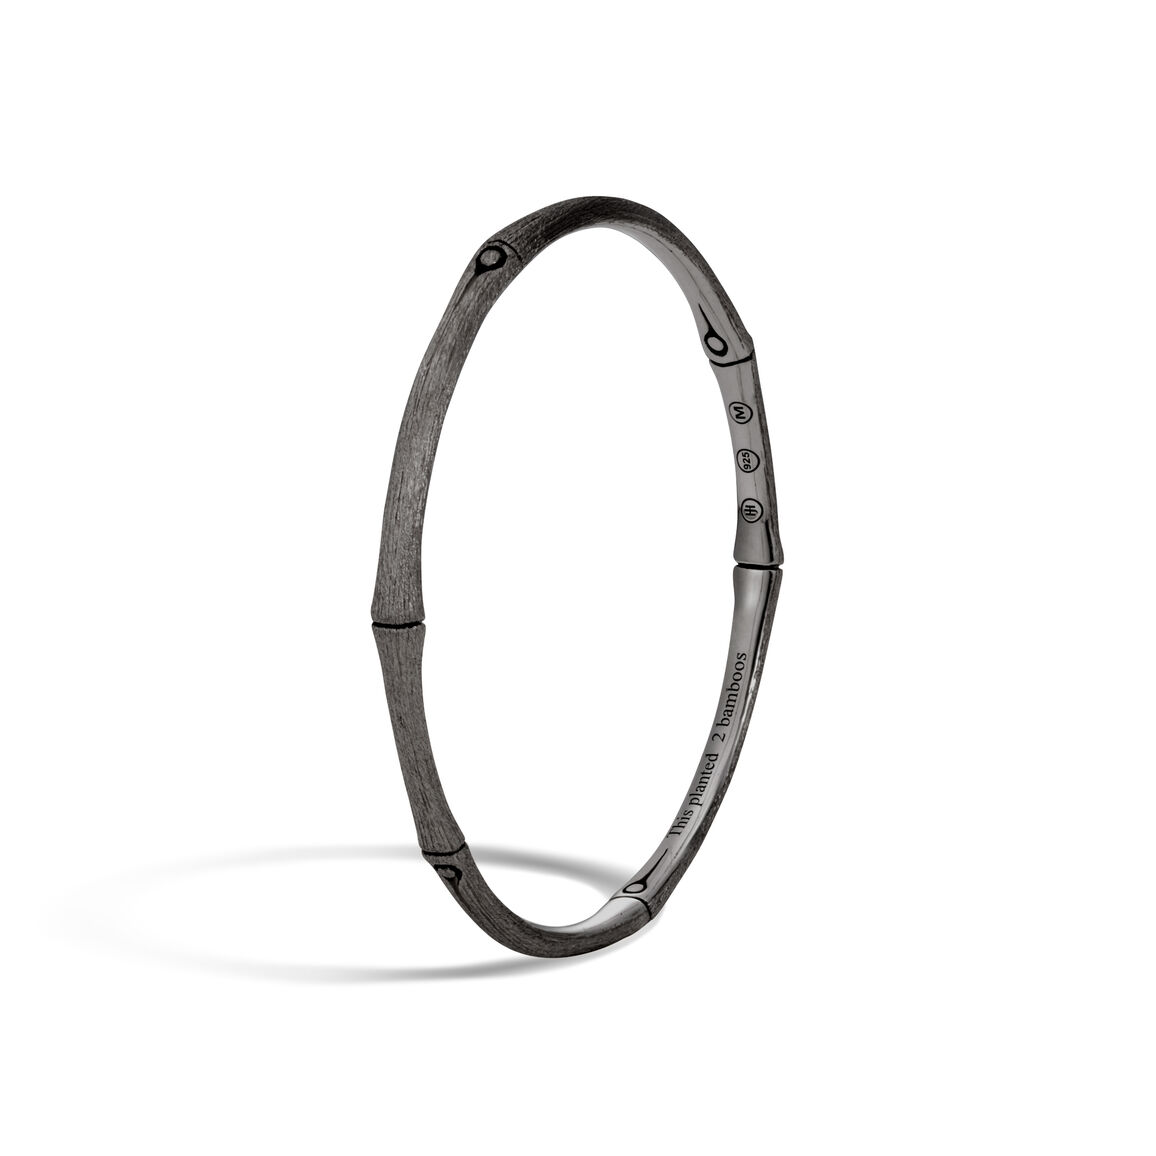 Bamboo 3.5MM Bangle in Blackened Brushed Silver